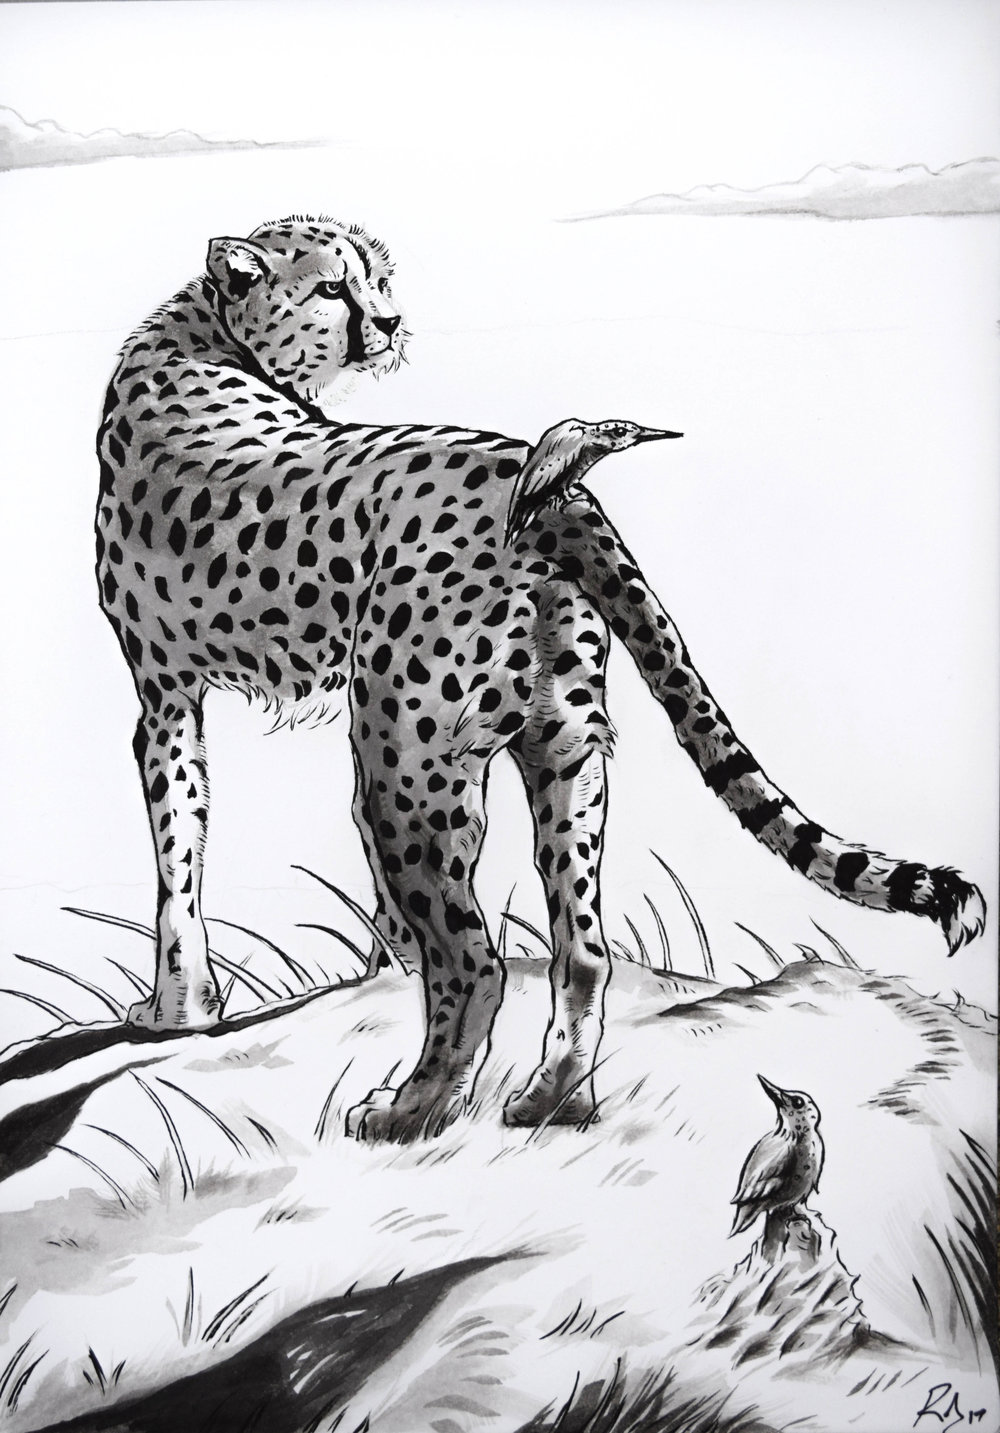 'The Cheetah & The Kingfisher'